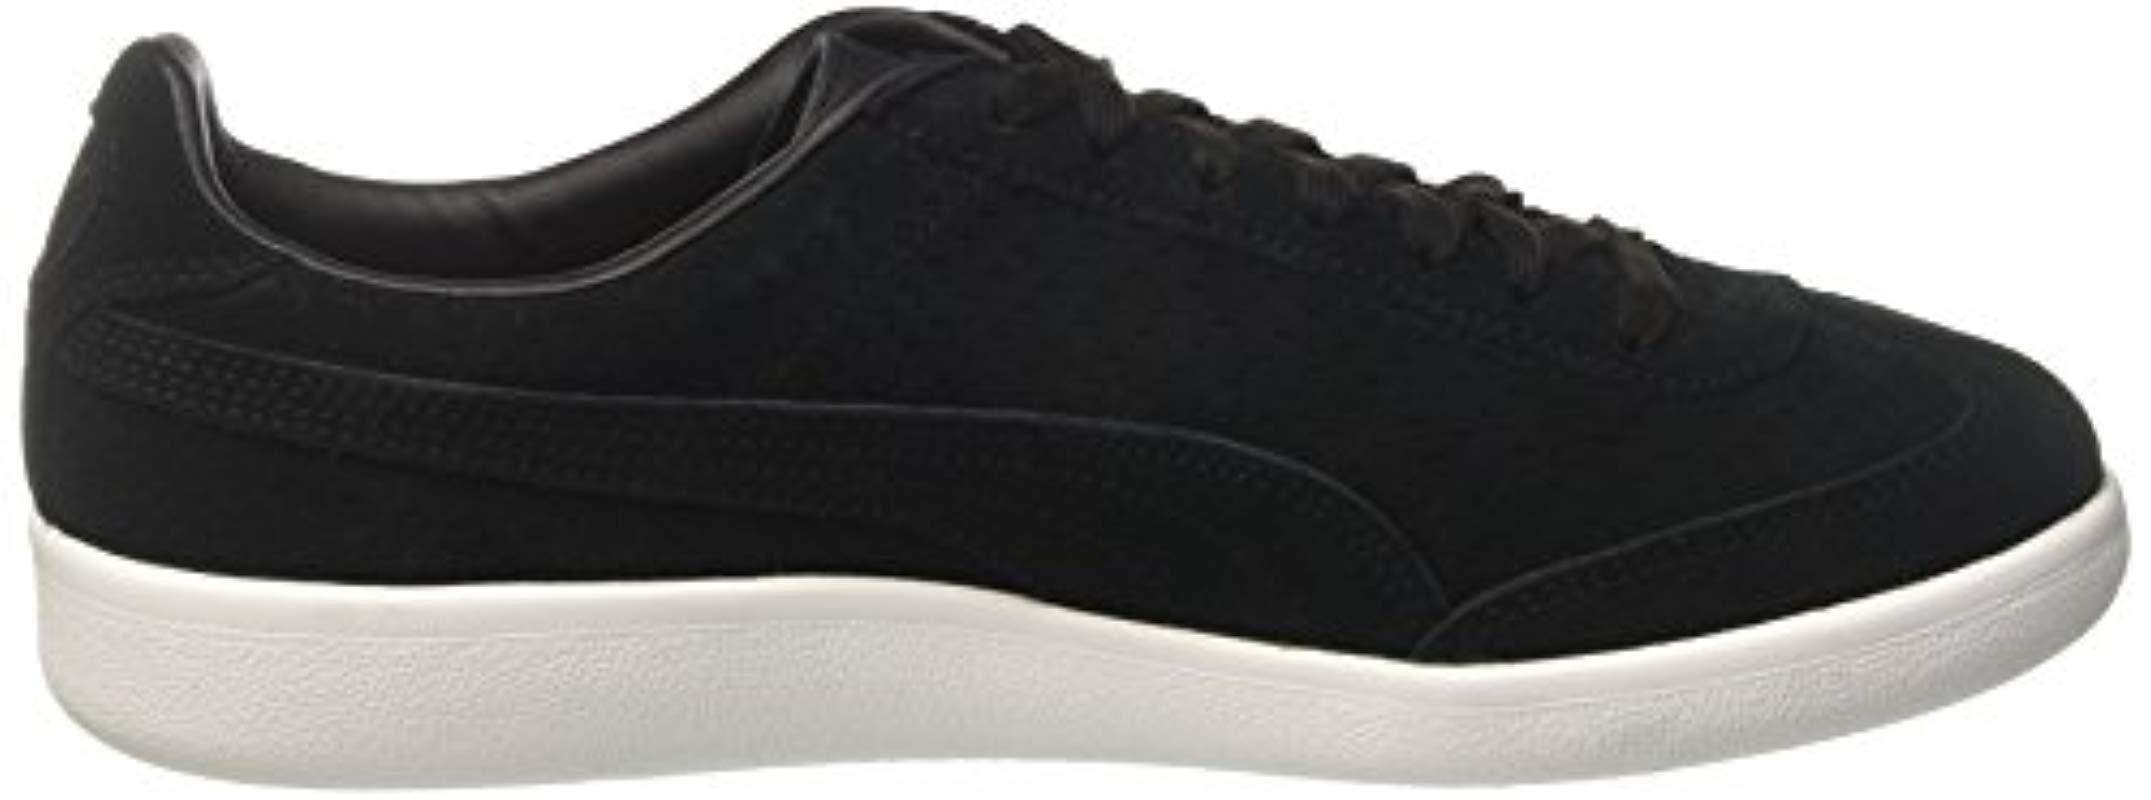 9008bcfc6389 PUMA Madrid Perf Suede Wn s Trainers in Black - Lyst